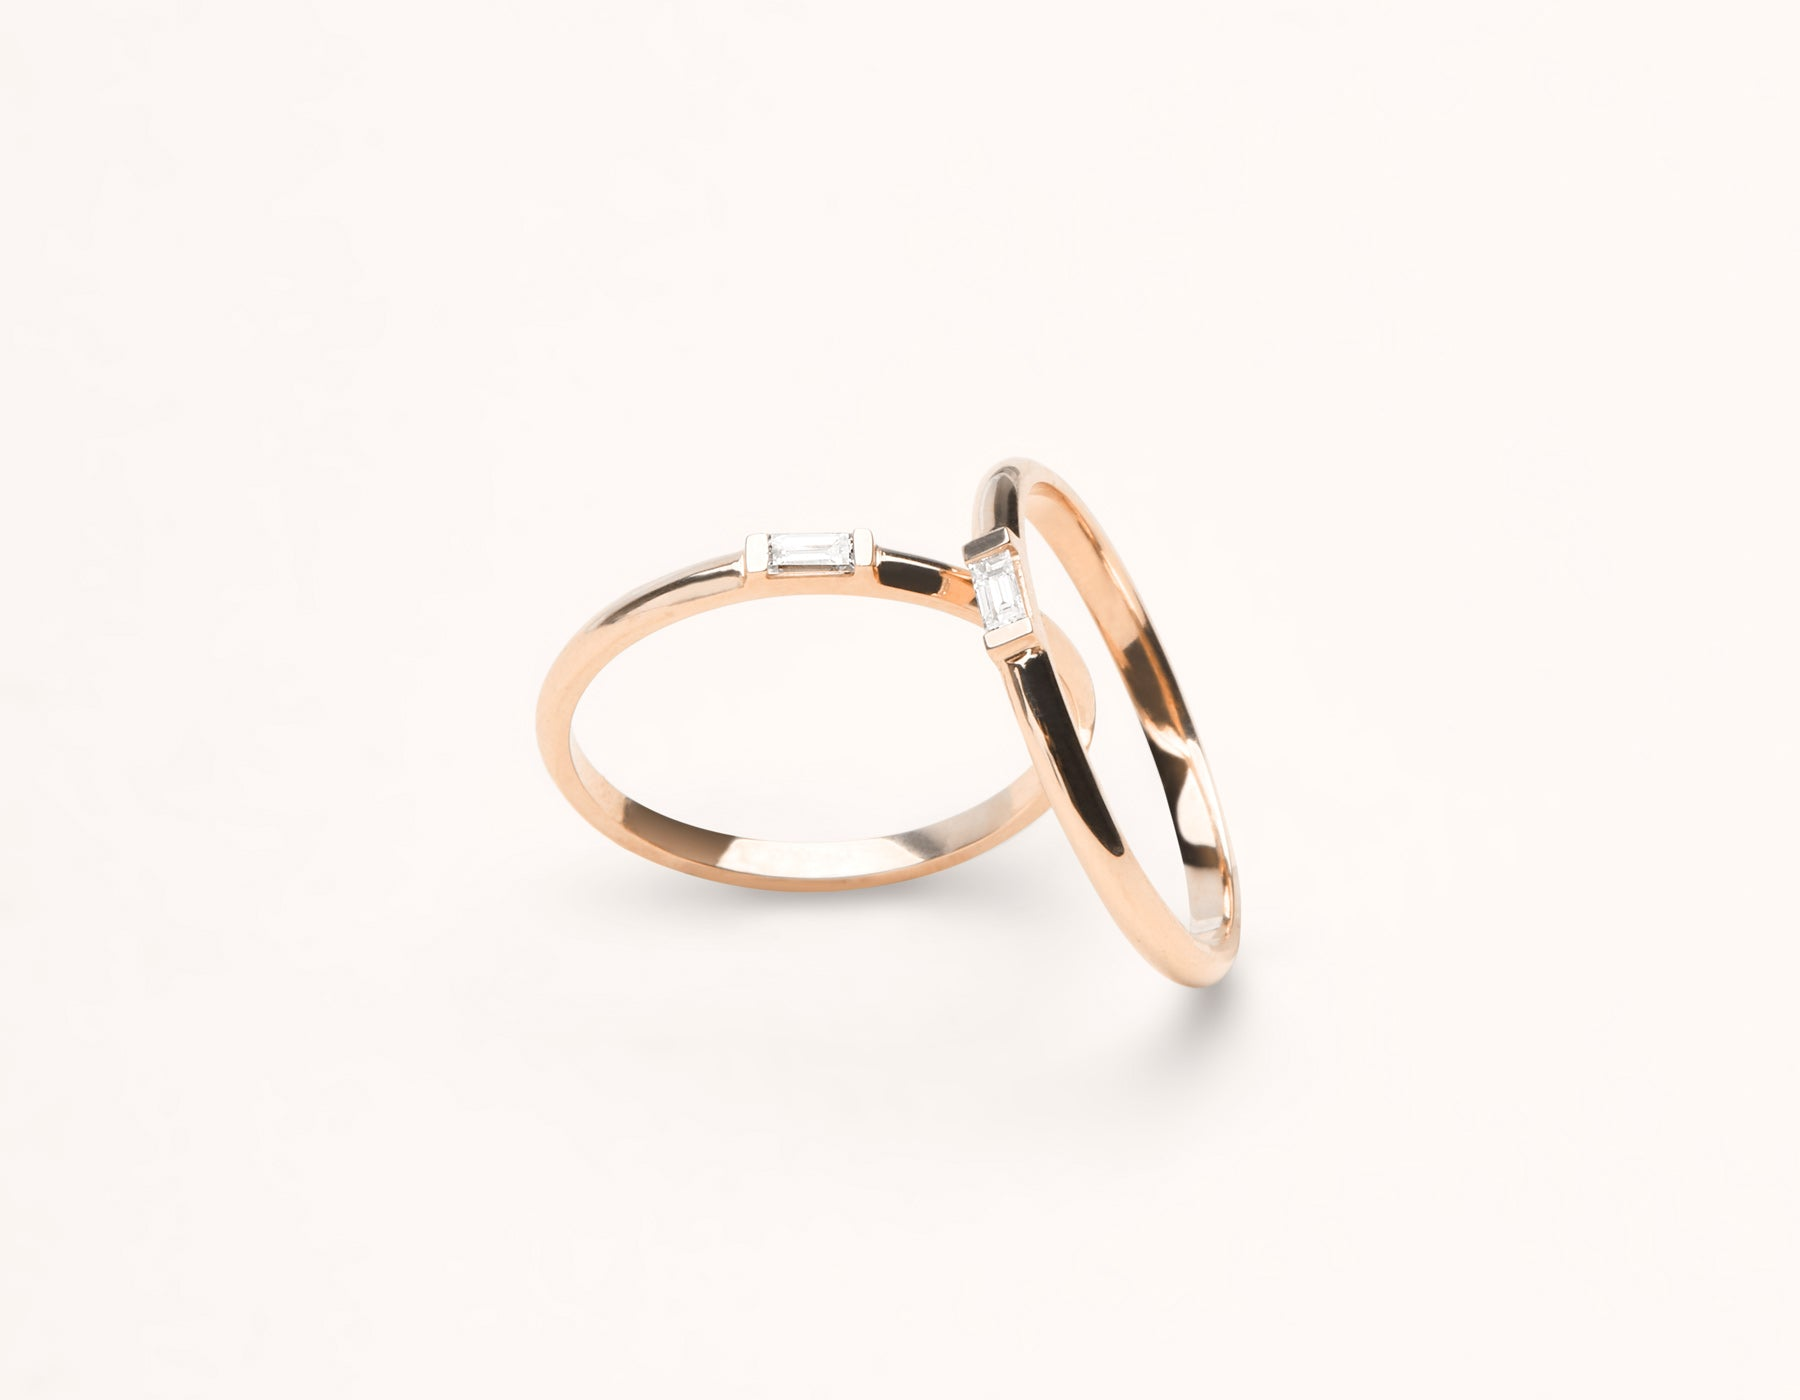 Modern Minimalist 14k solid gold Baguette Diamond Ring pair band by Vrai and Oro, 14K Rose Gold